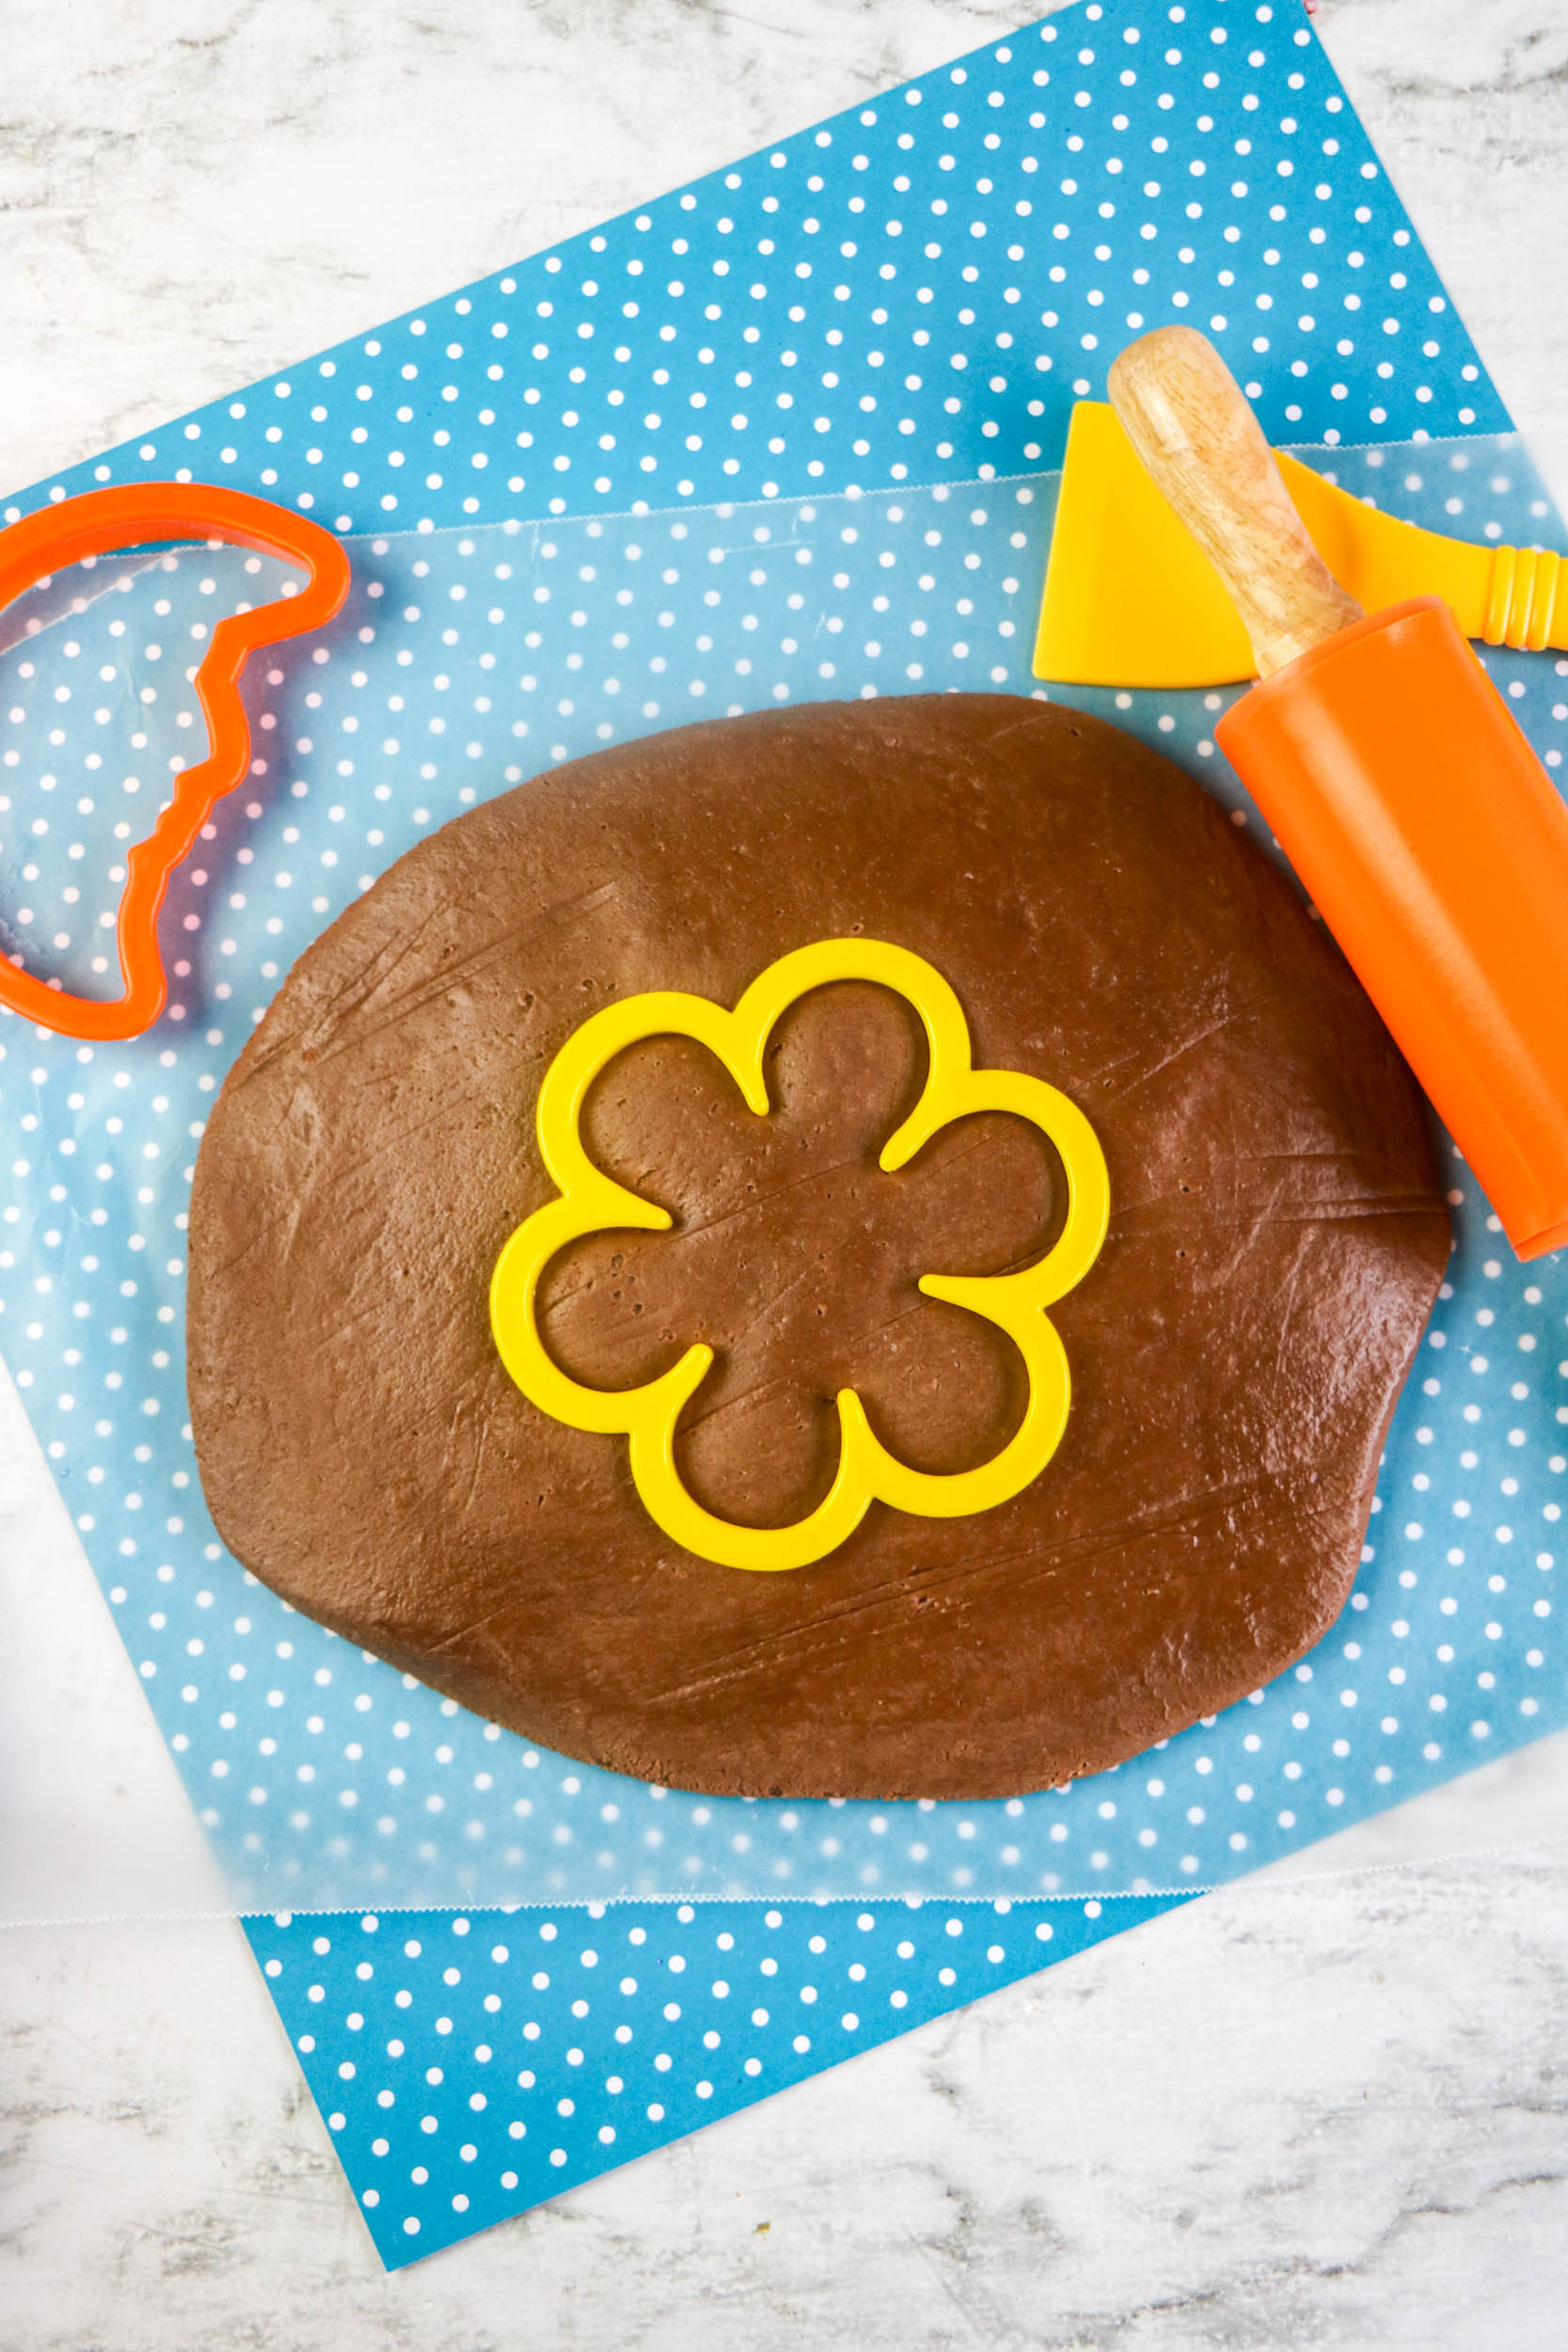 This chocolate homemade playdough recipe is made with just two ingredients and is a terrific activity for younger kids. Edible playdough is a yummy fun with food activity.